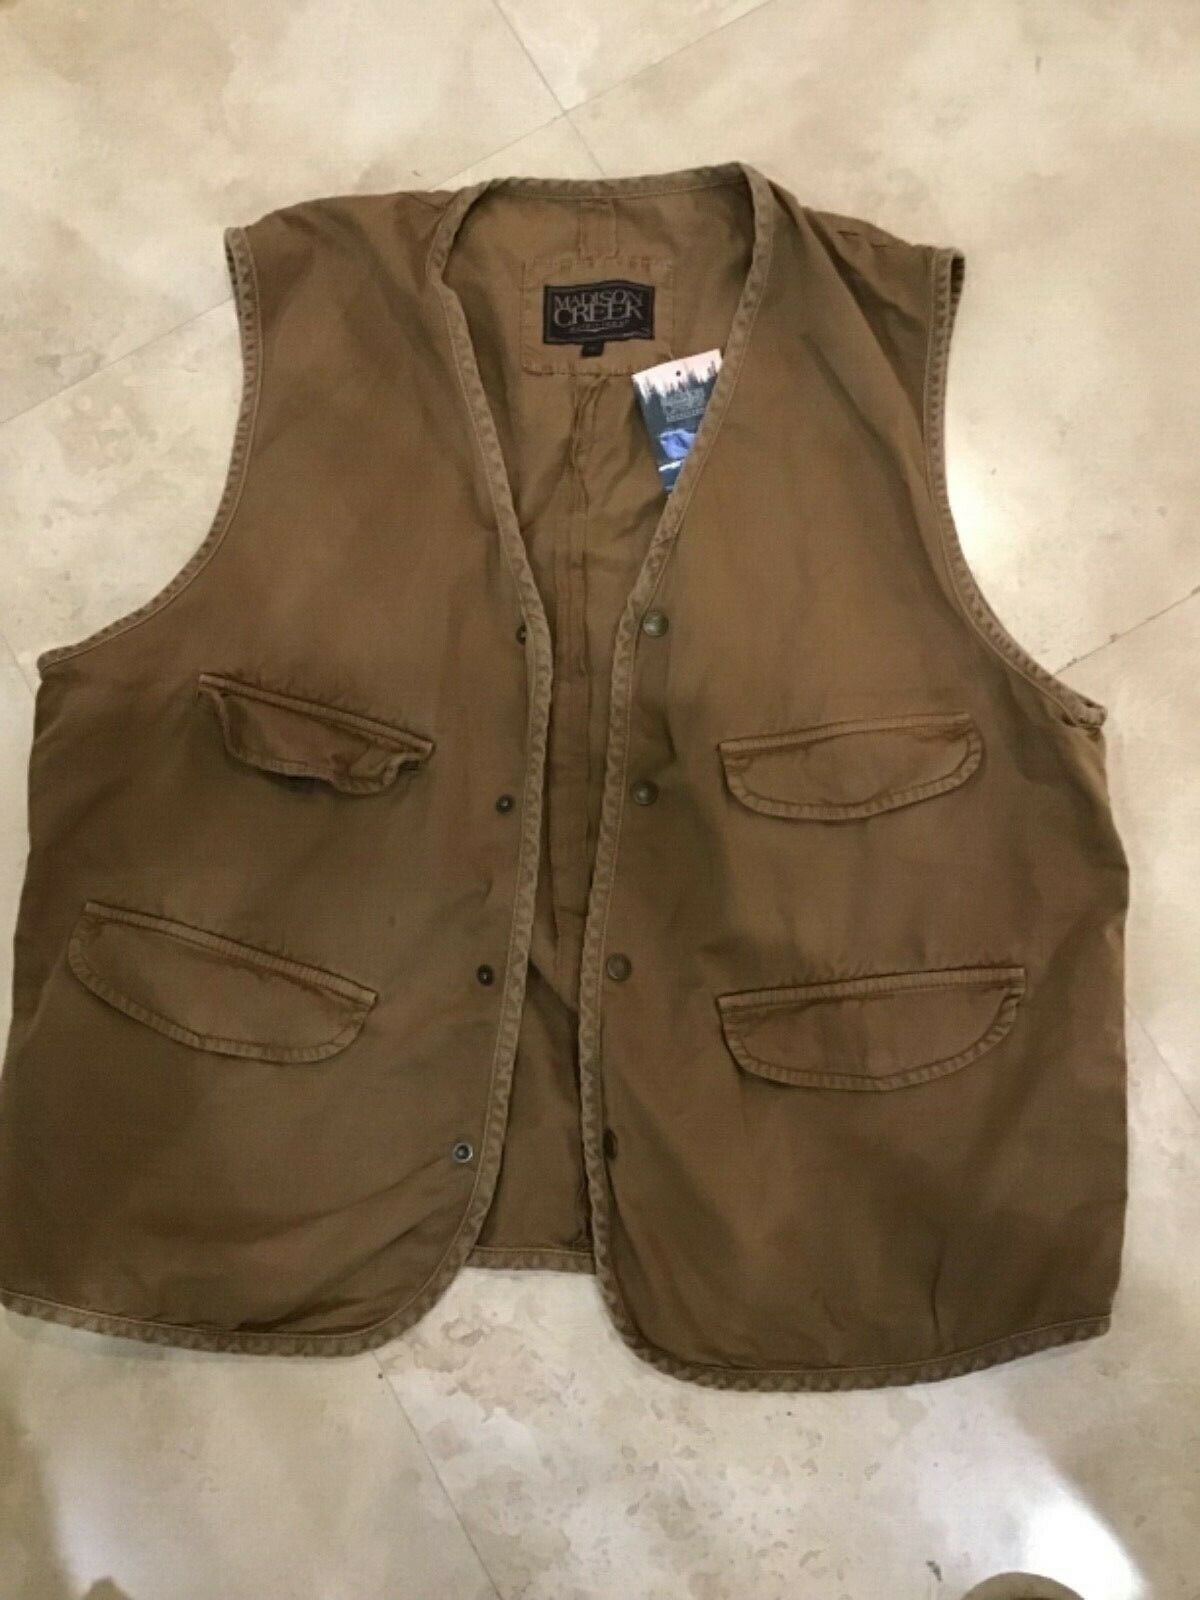 Madison Creek Outfitters Outdoor Vest Men's Size XL BROWN  RETAIL-125.00 NWT